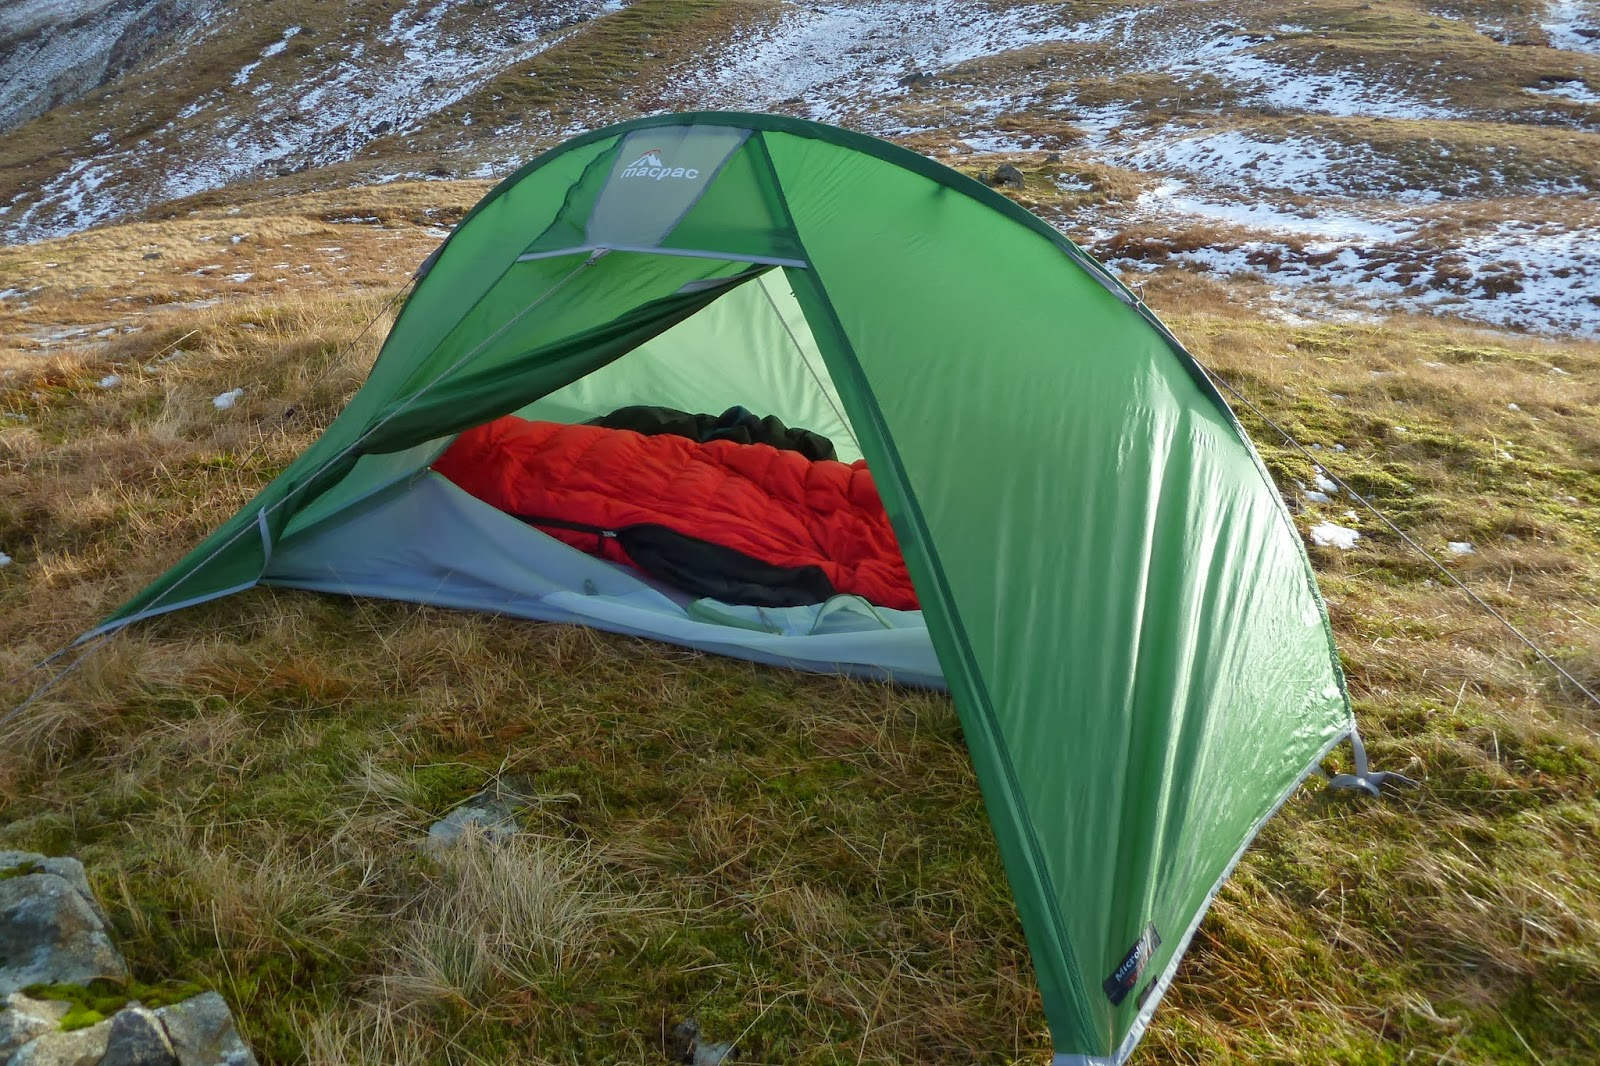 Another gear review - the Macpac Microlight tent & the outdoor diaries: Another gear review - the Macpac Microlight tent